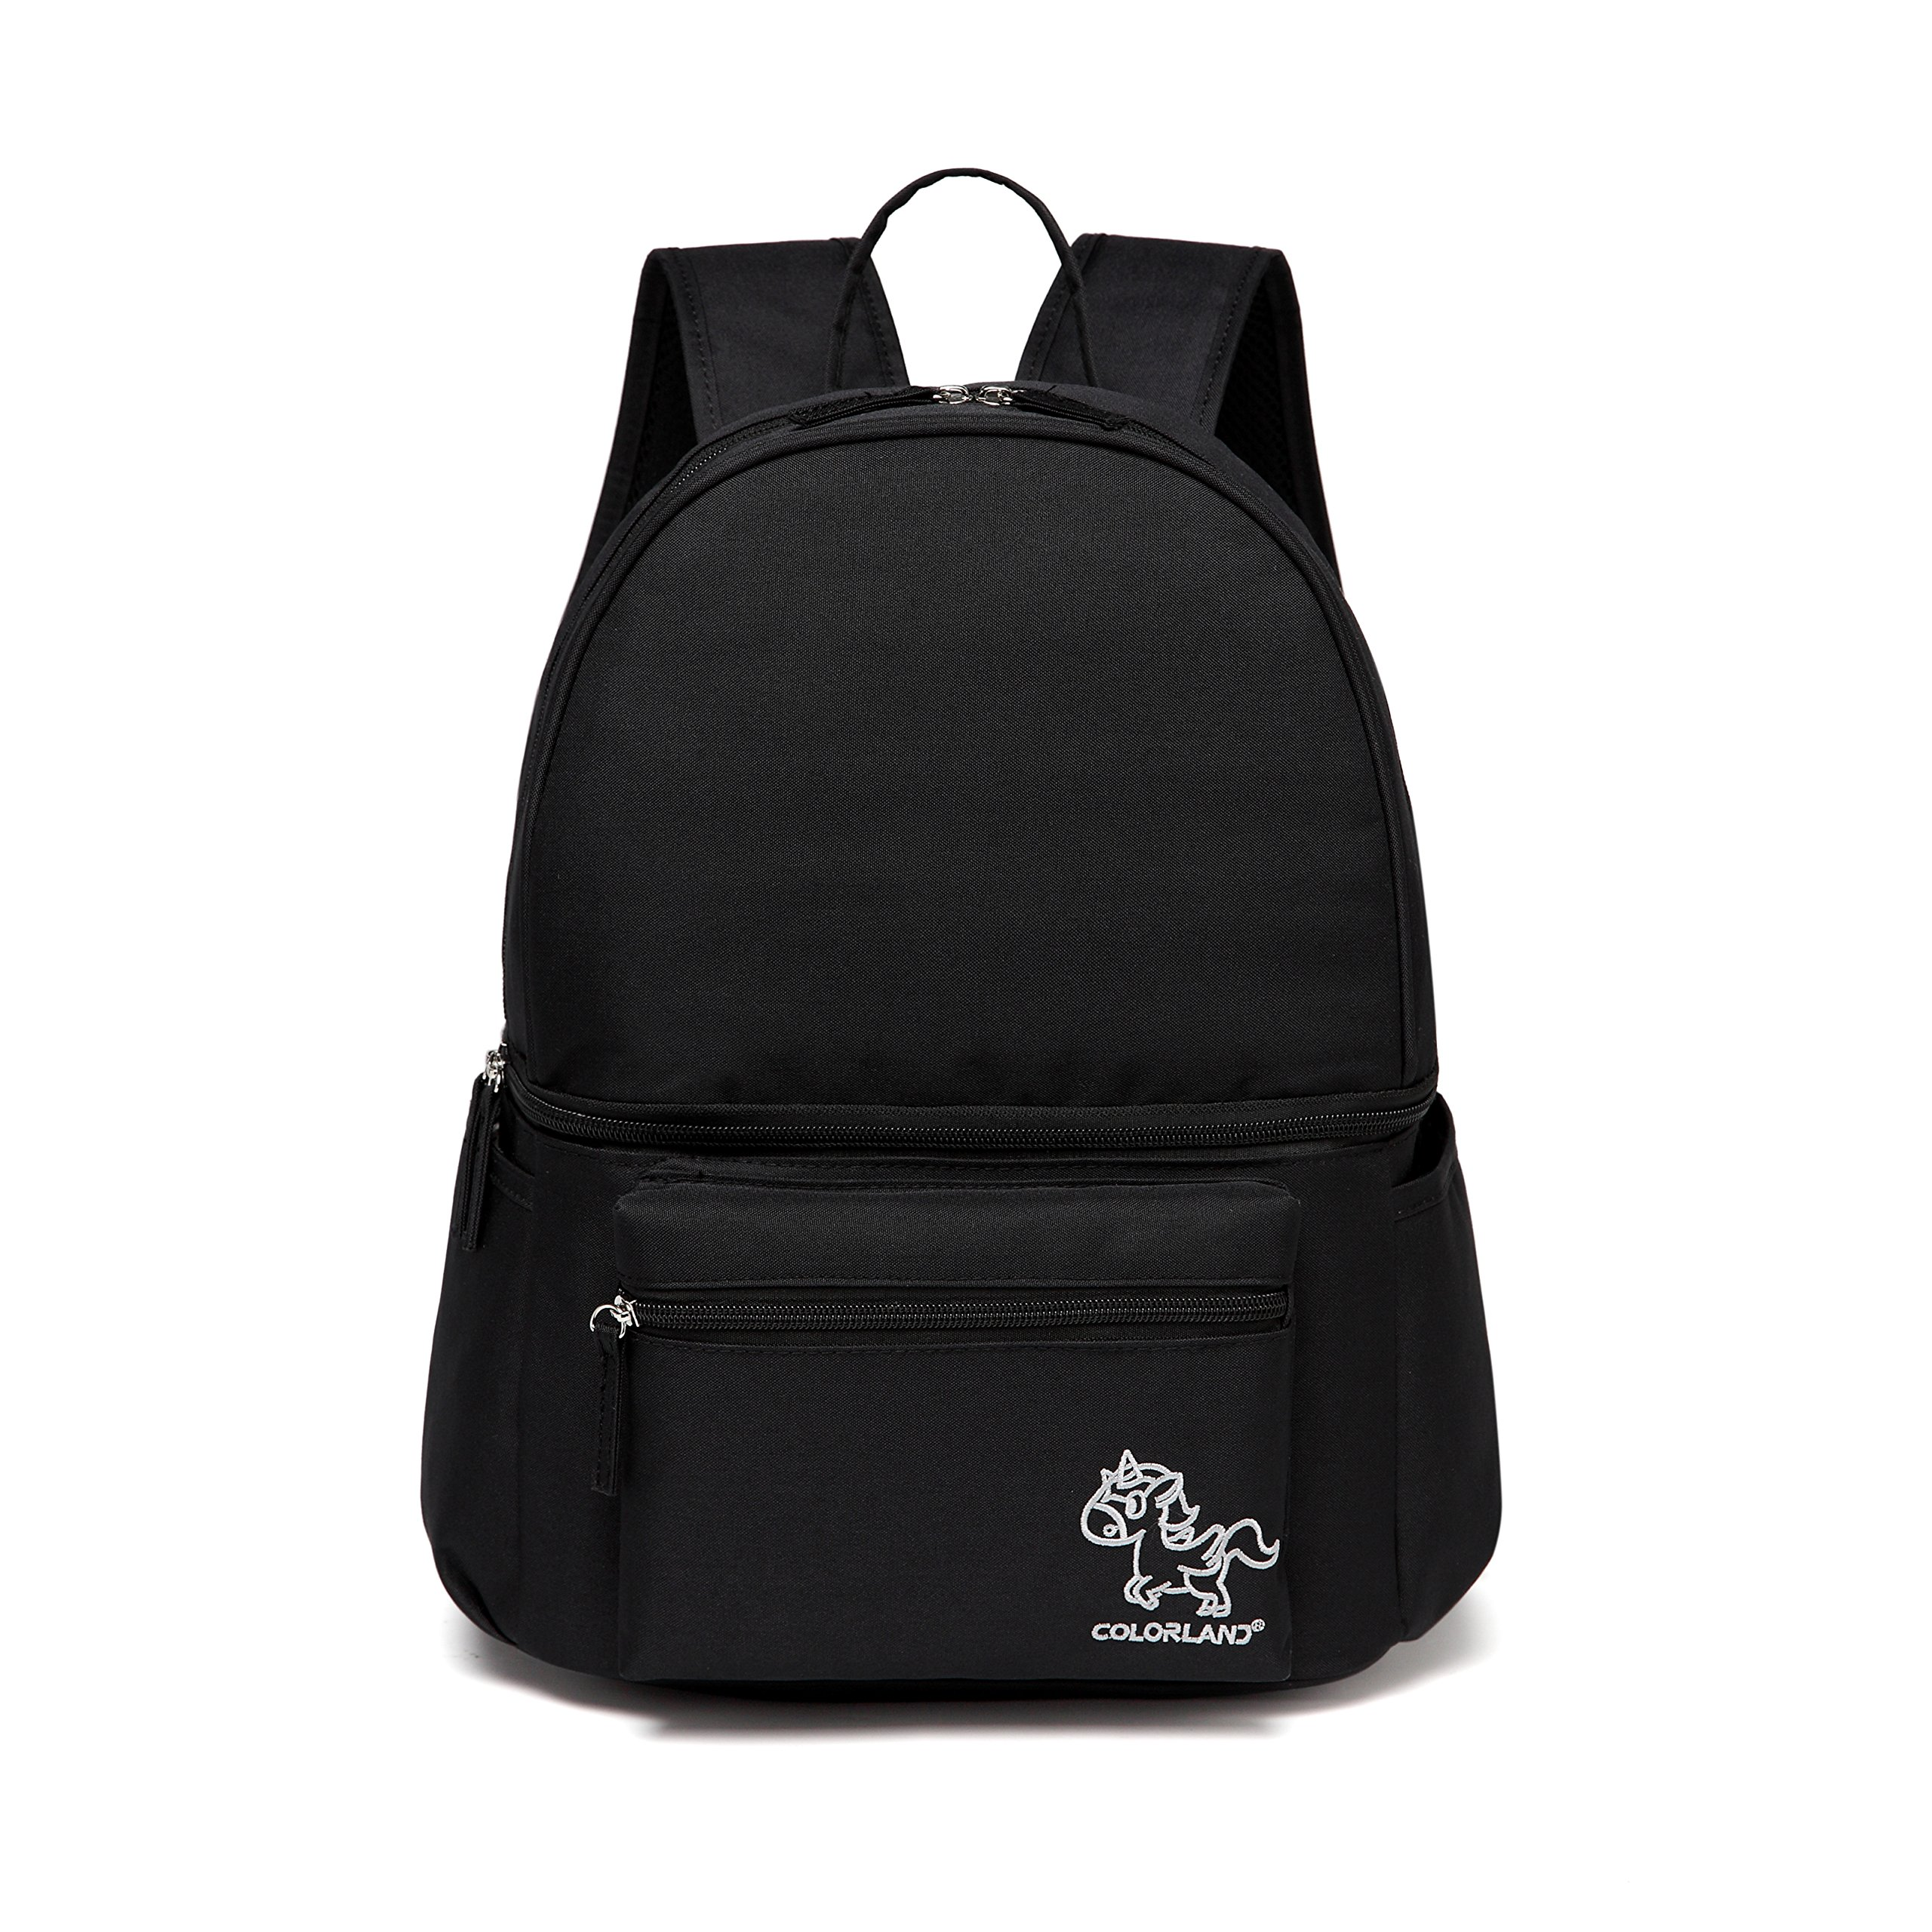 Colorland Lacey Downtown Lunch Backpack Storage with Cooler Compartment for Breast Pump Milk (Black)